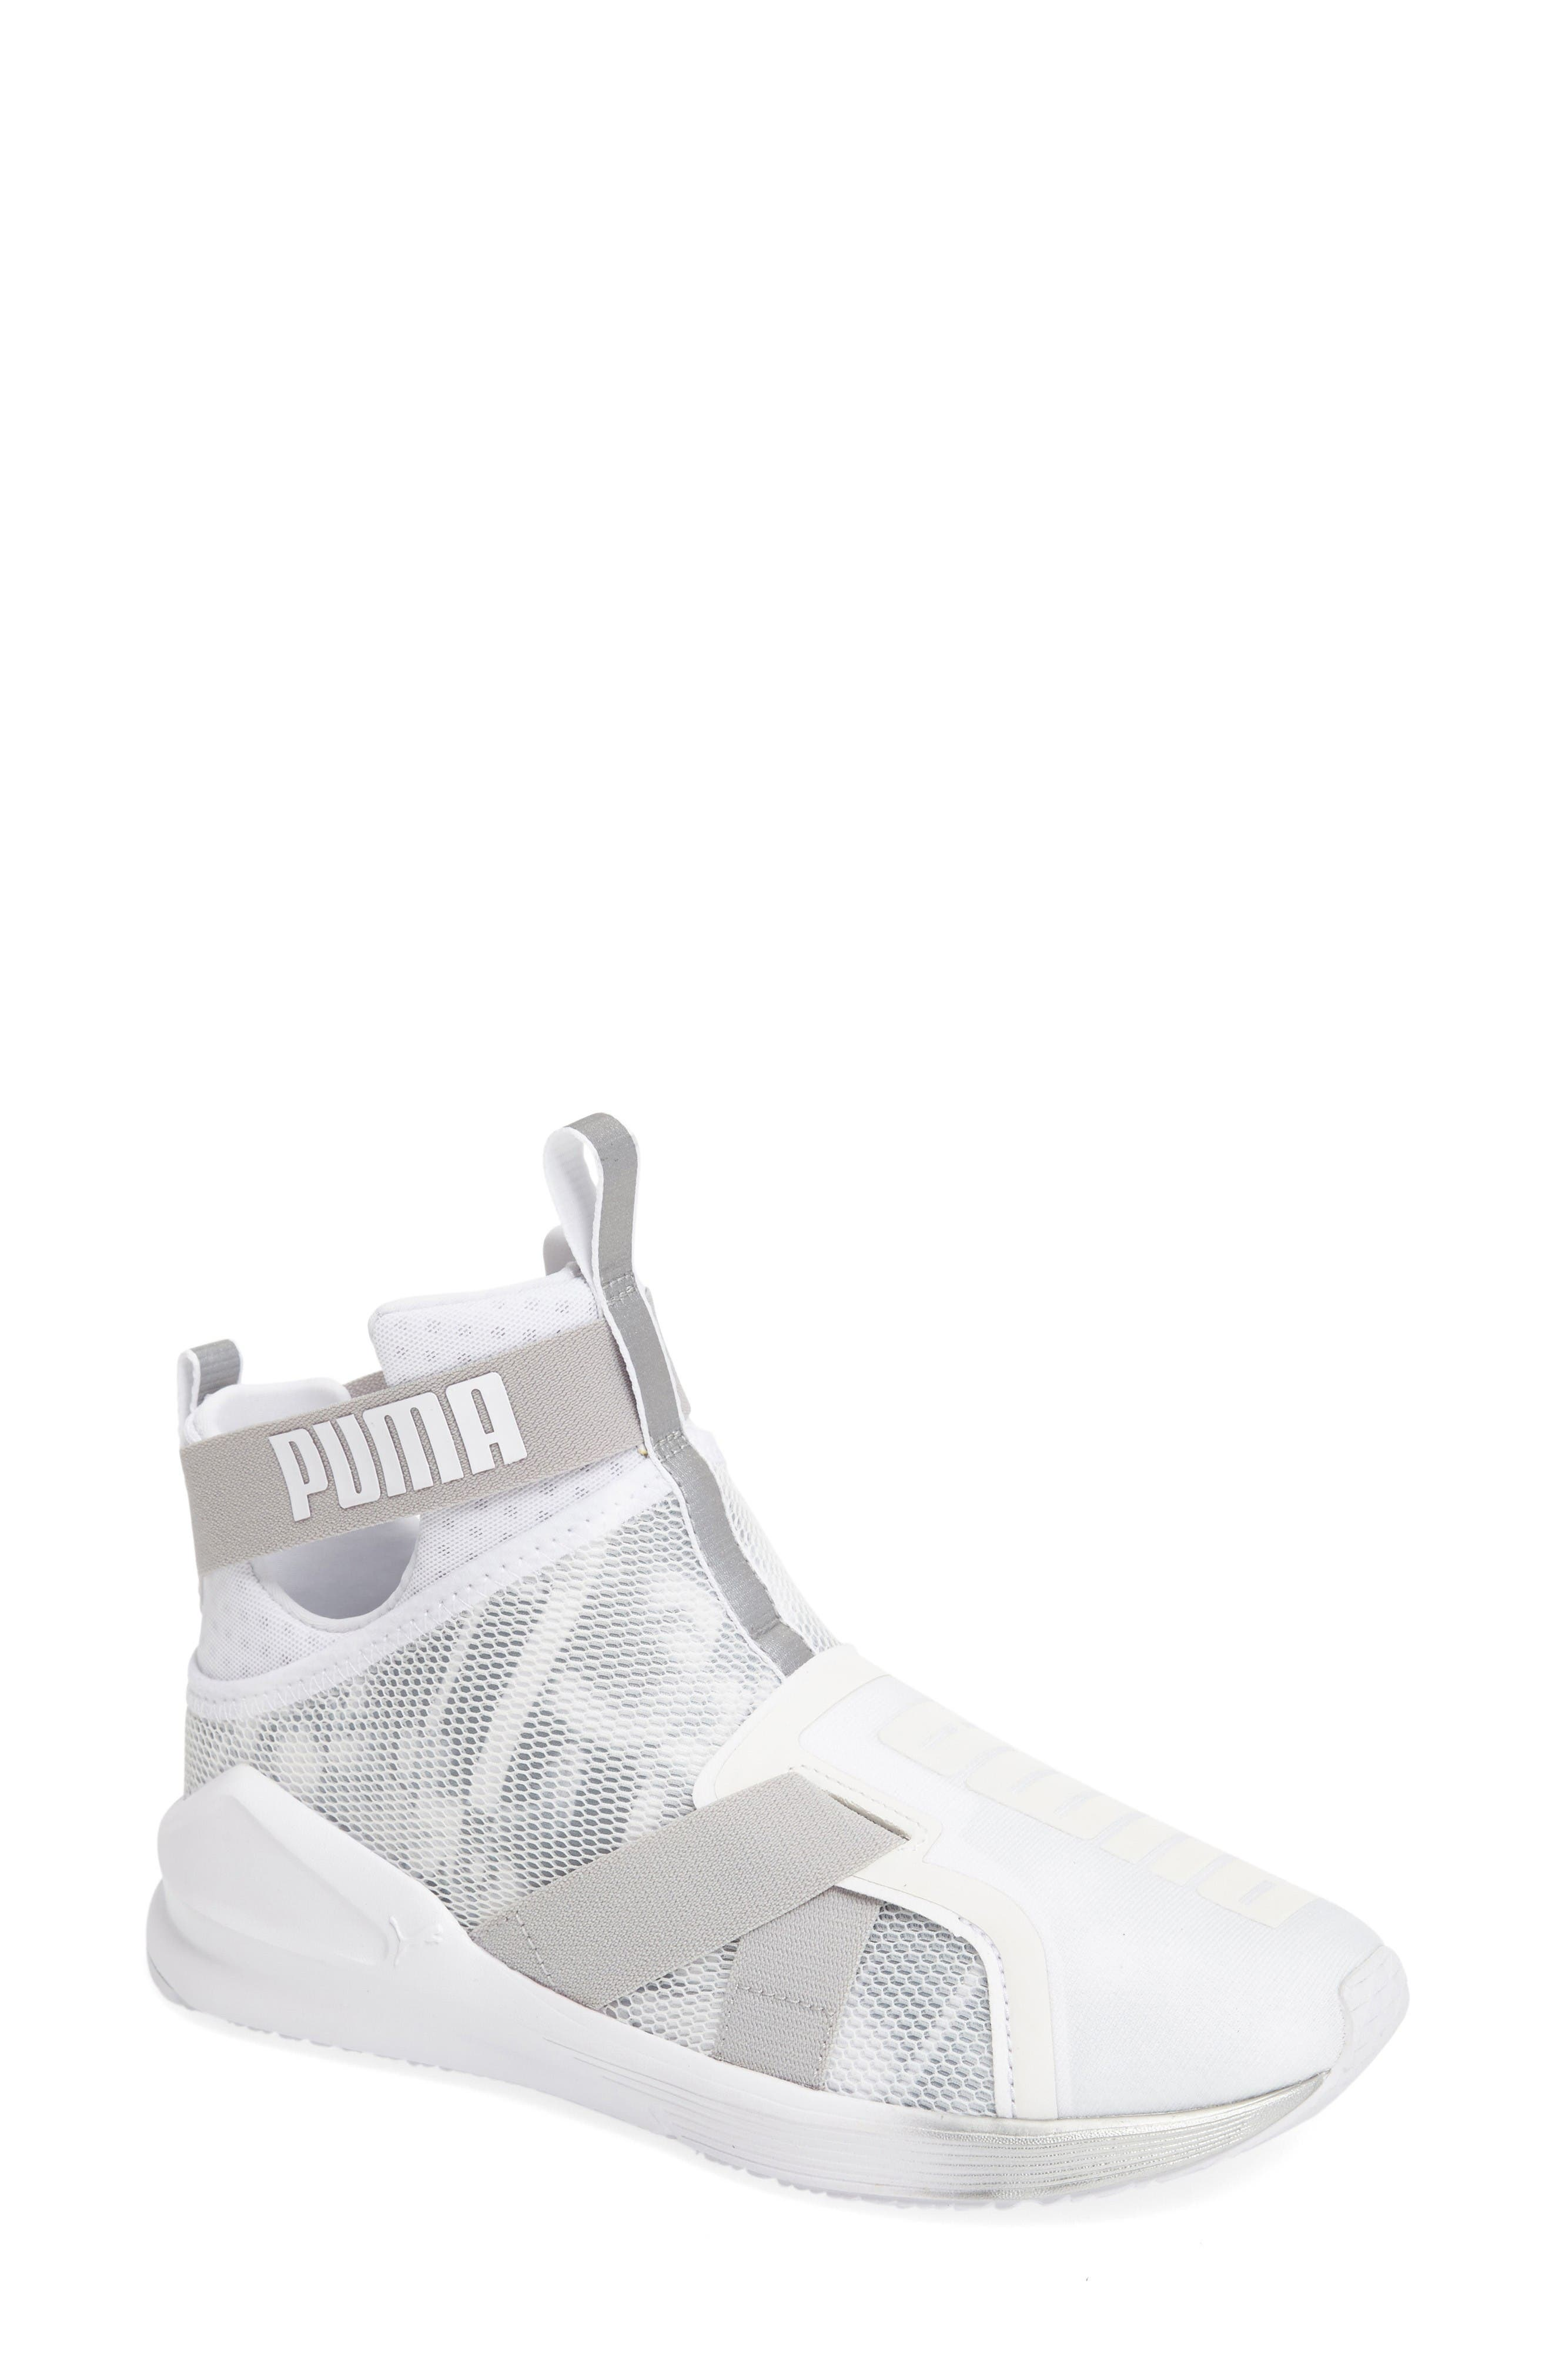 PUMA Fierce Strap Swan Training Sneaker